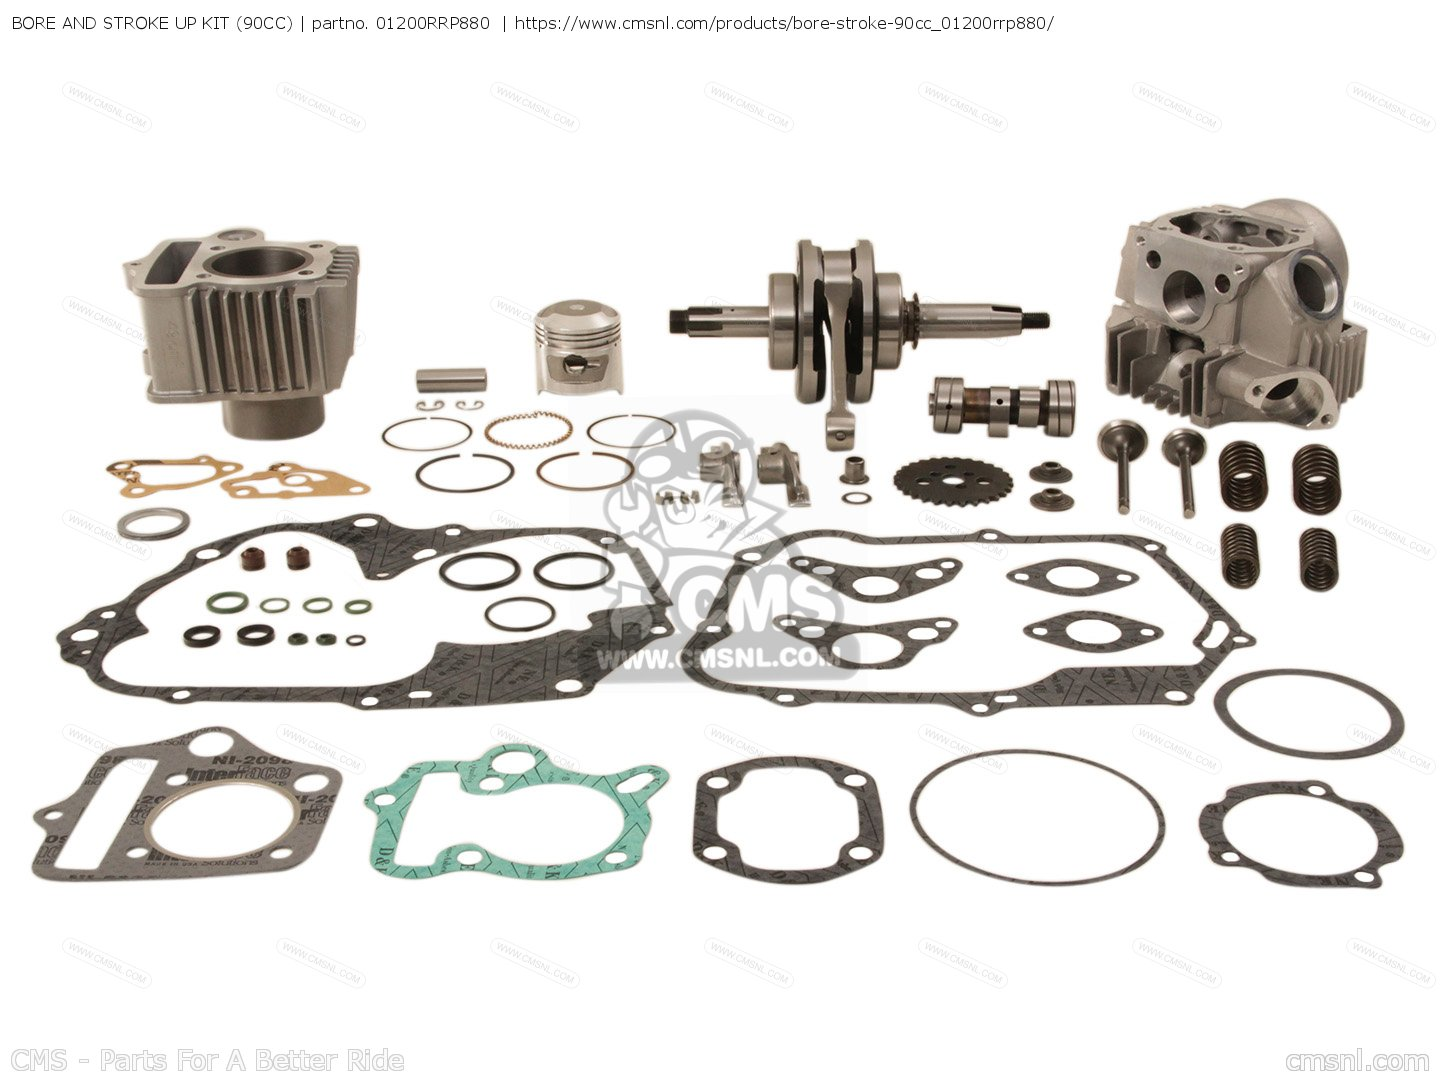 HONDA C50, C70, BORE AND STROKE UP KIT (90CC)